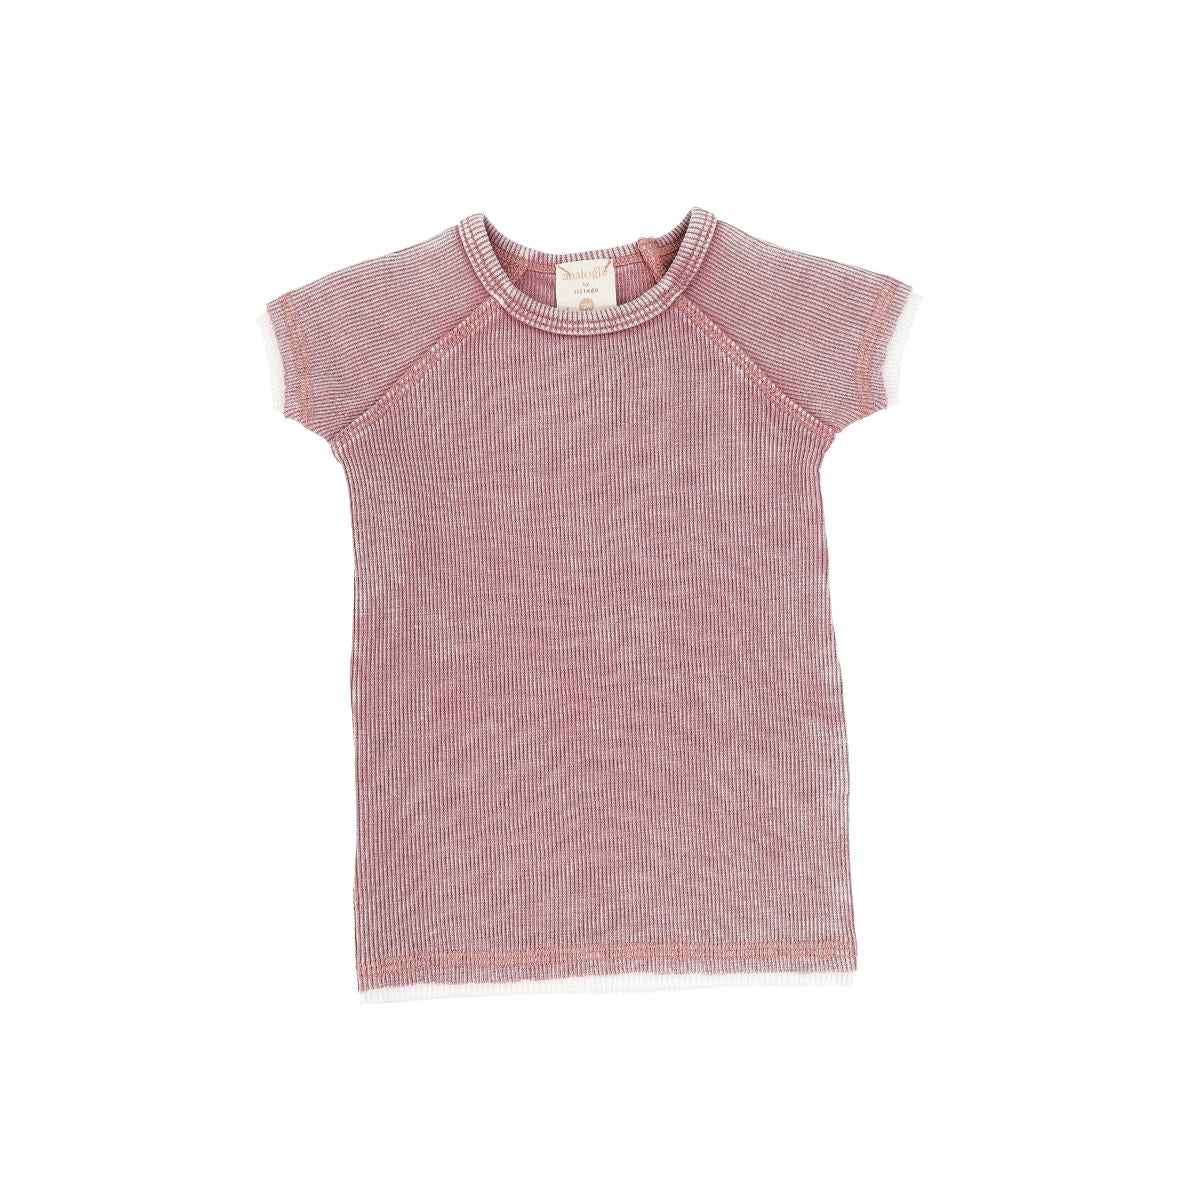 Analogie Pink Wash Denim Short Sleeve Tee